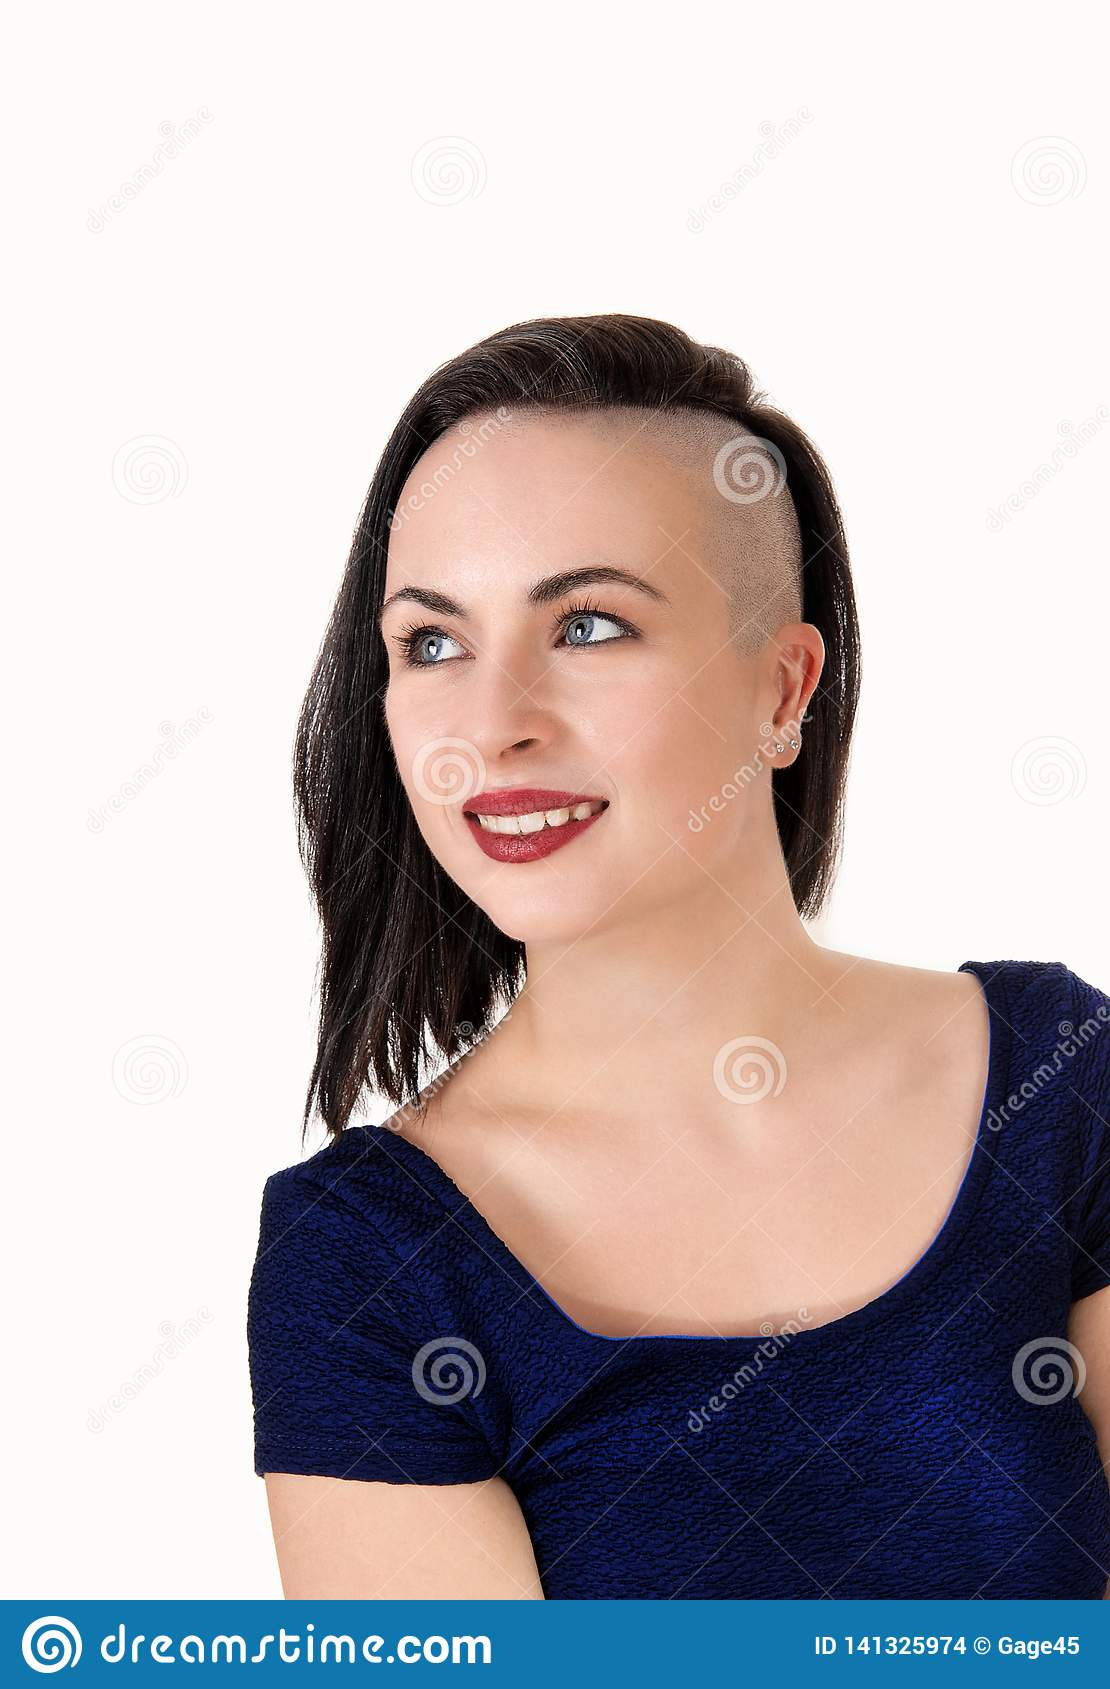 Close Up Of A Woman With A Very Fancy Haircut Stock Photo Image Of Eyes Background 141325974